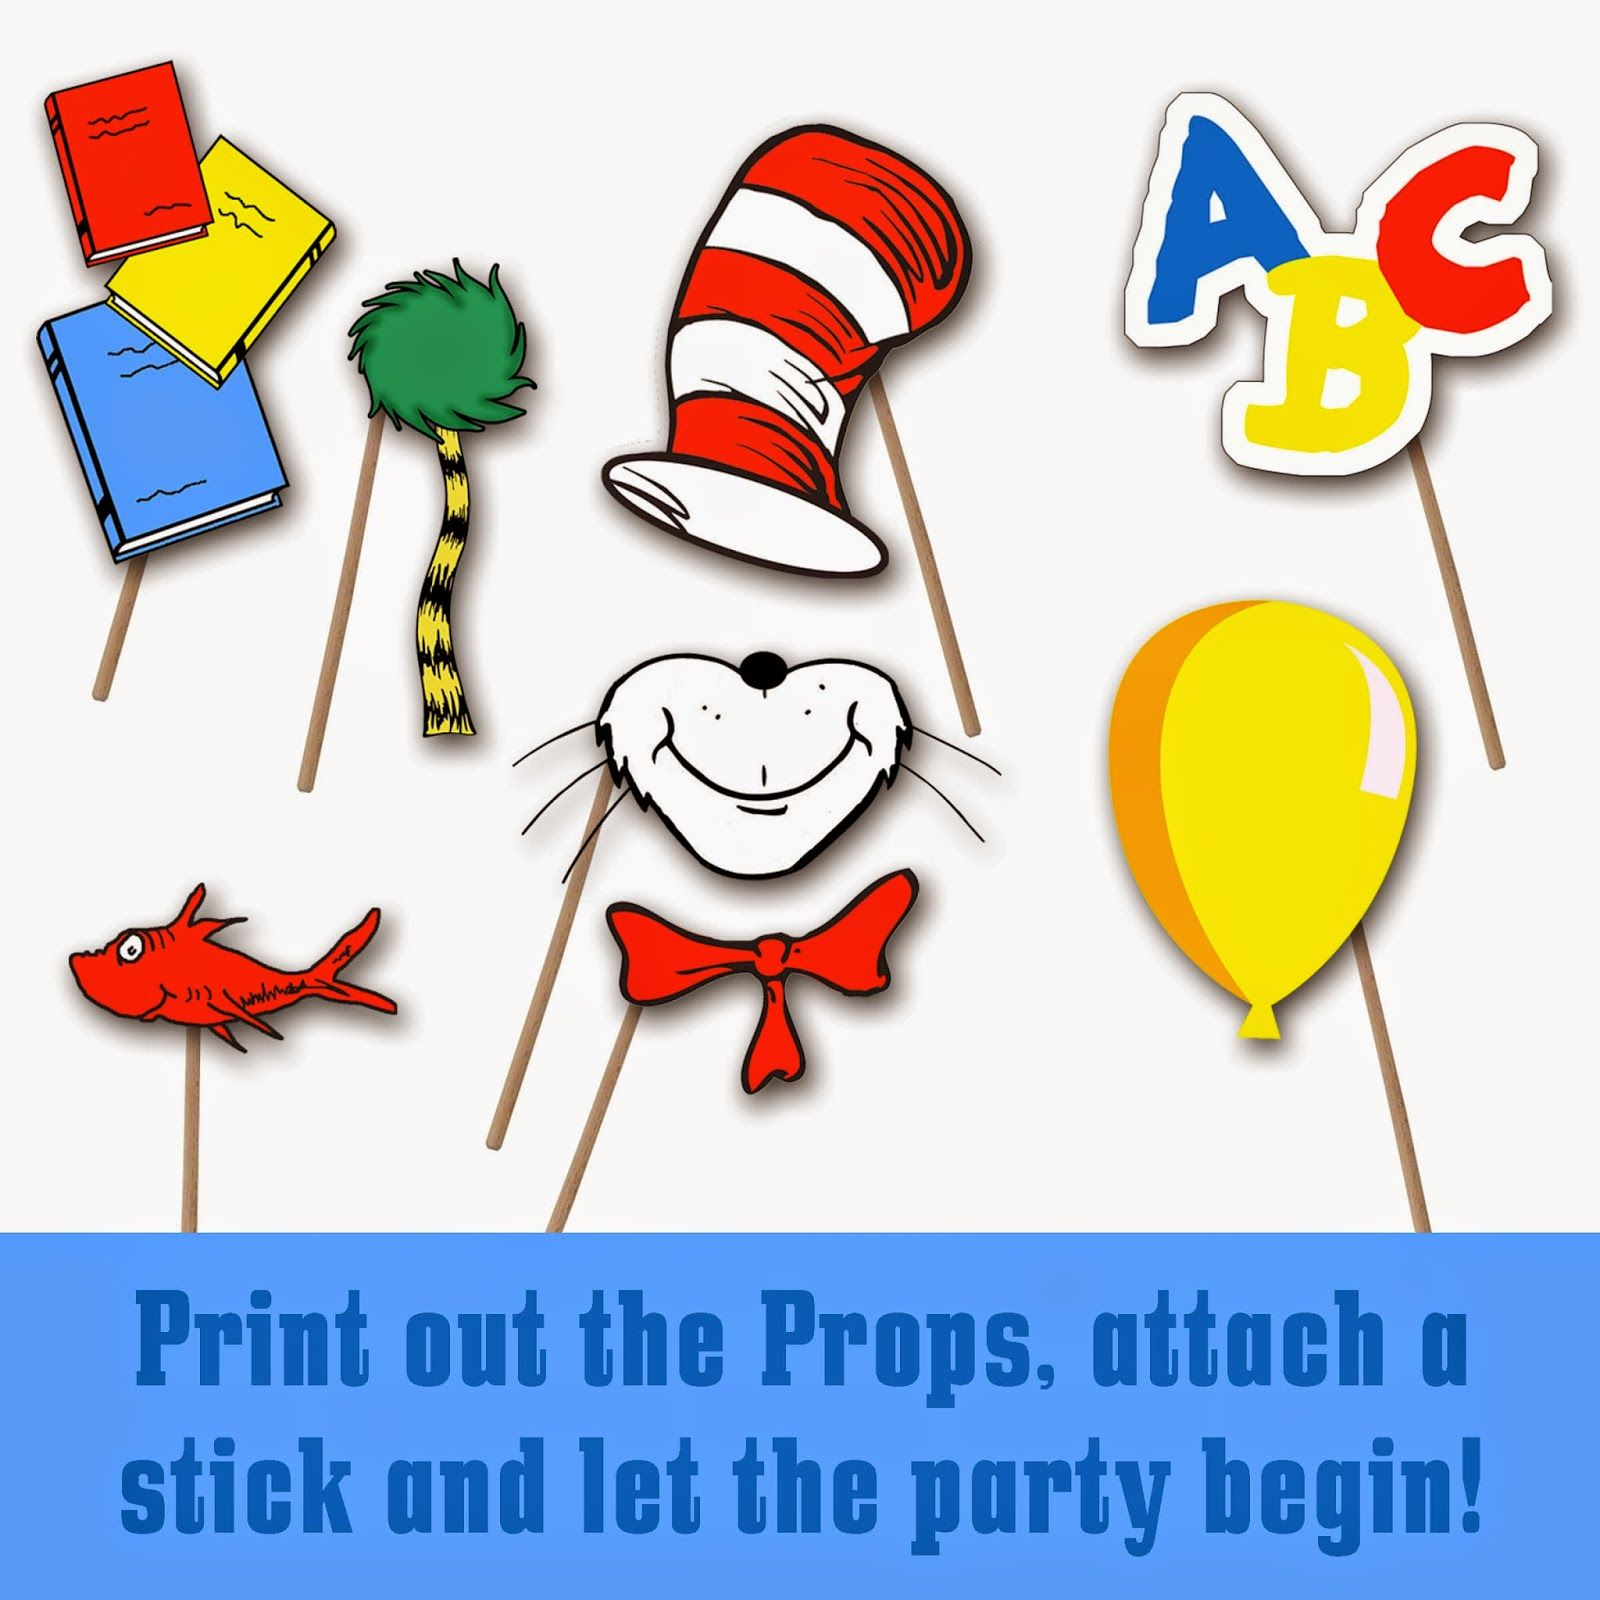 Dr. Seuss Photo Booth Printable Props.